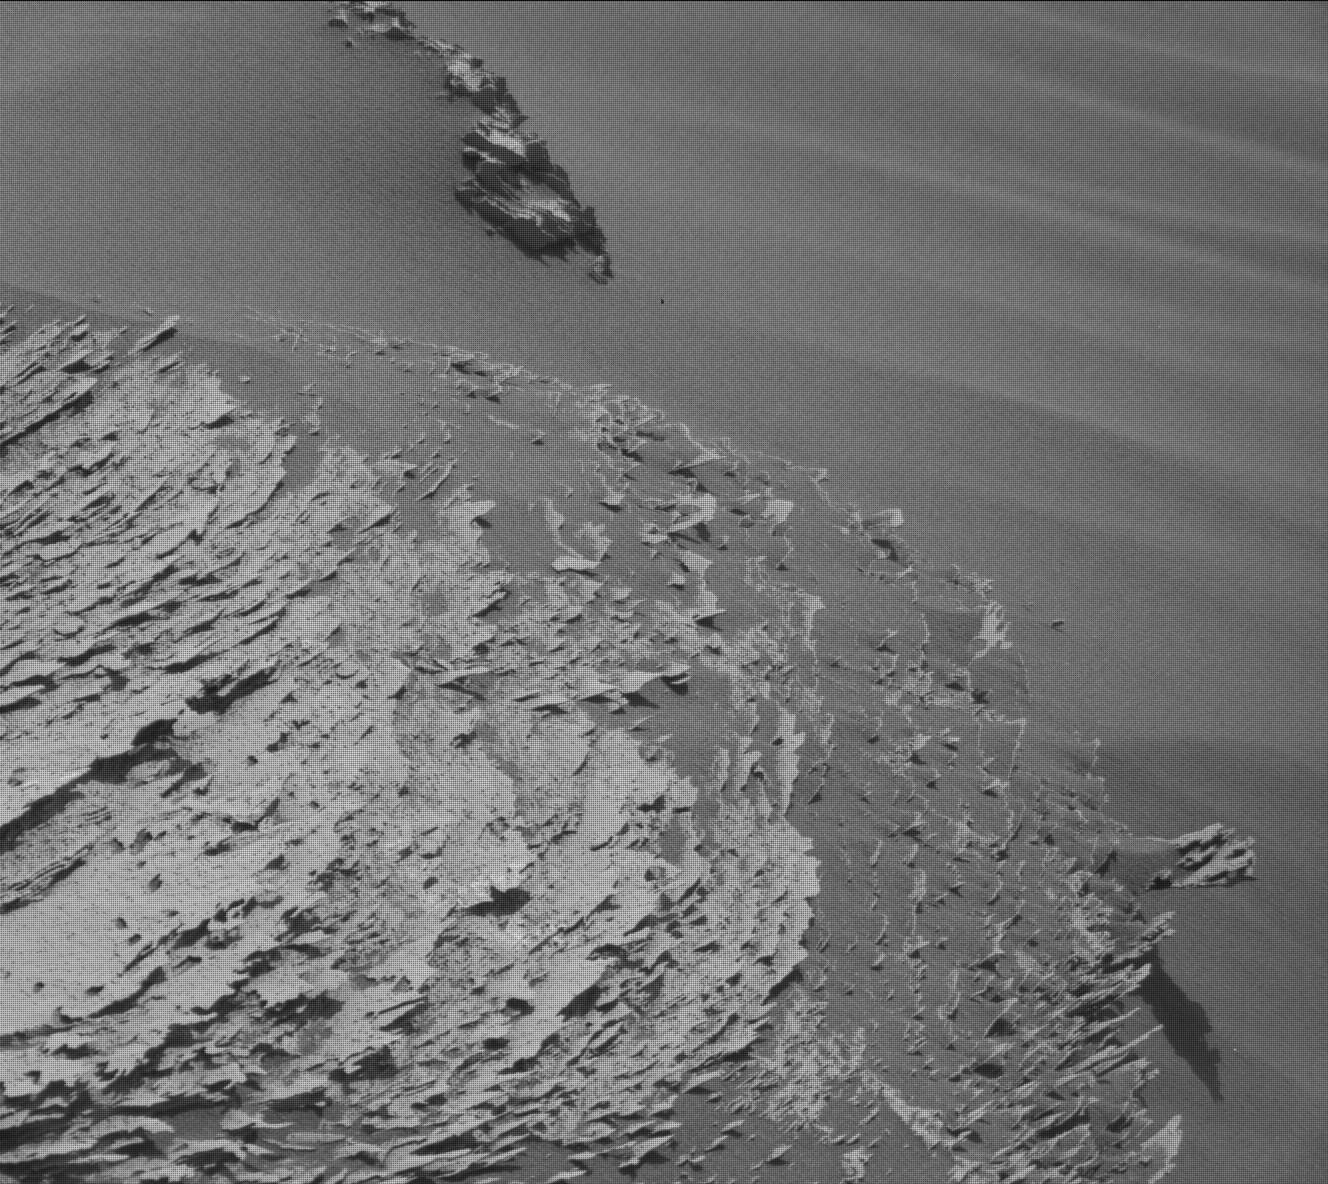 Nasa's Mars rover Curiosity acquired this image using its Mast Camera (Mastcam) on Sol 3054